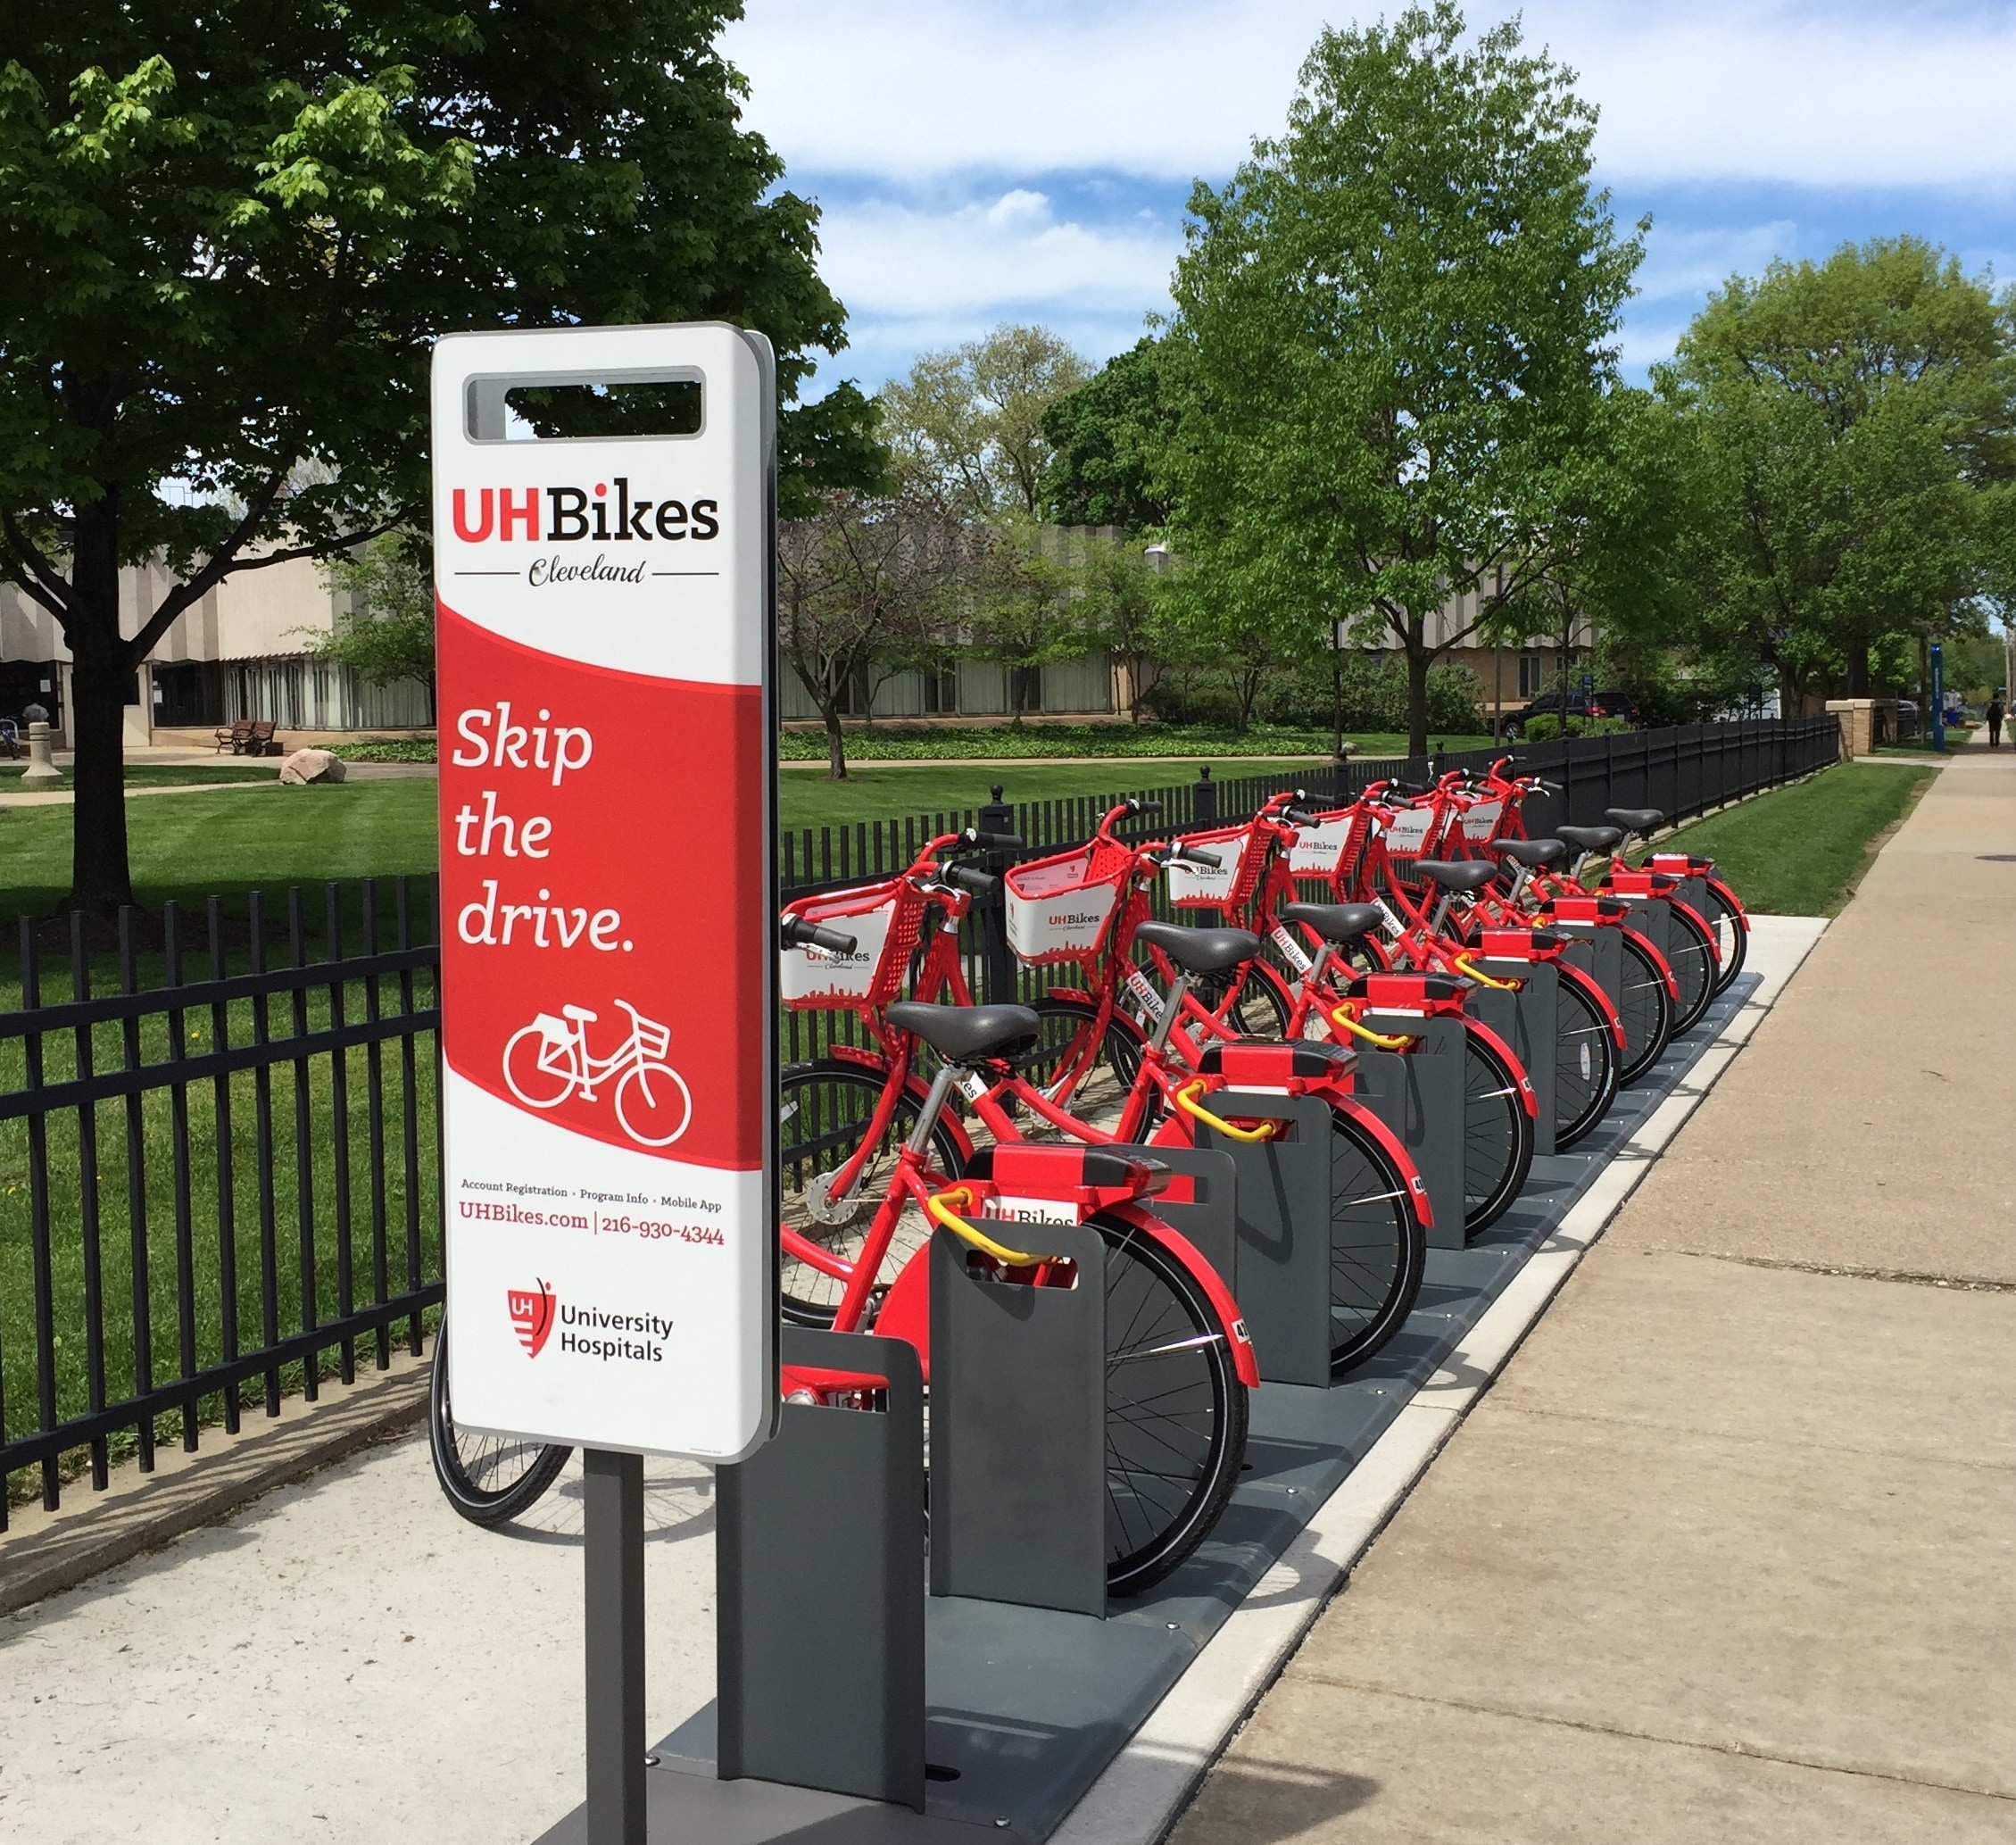 bike sharing hub with red bikes